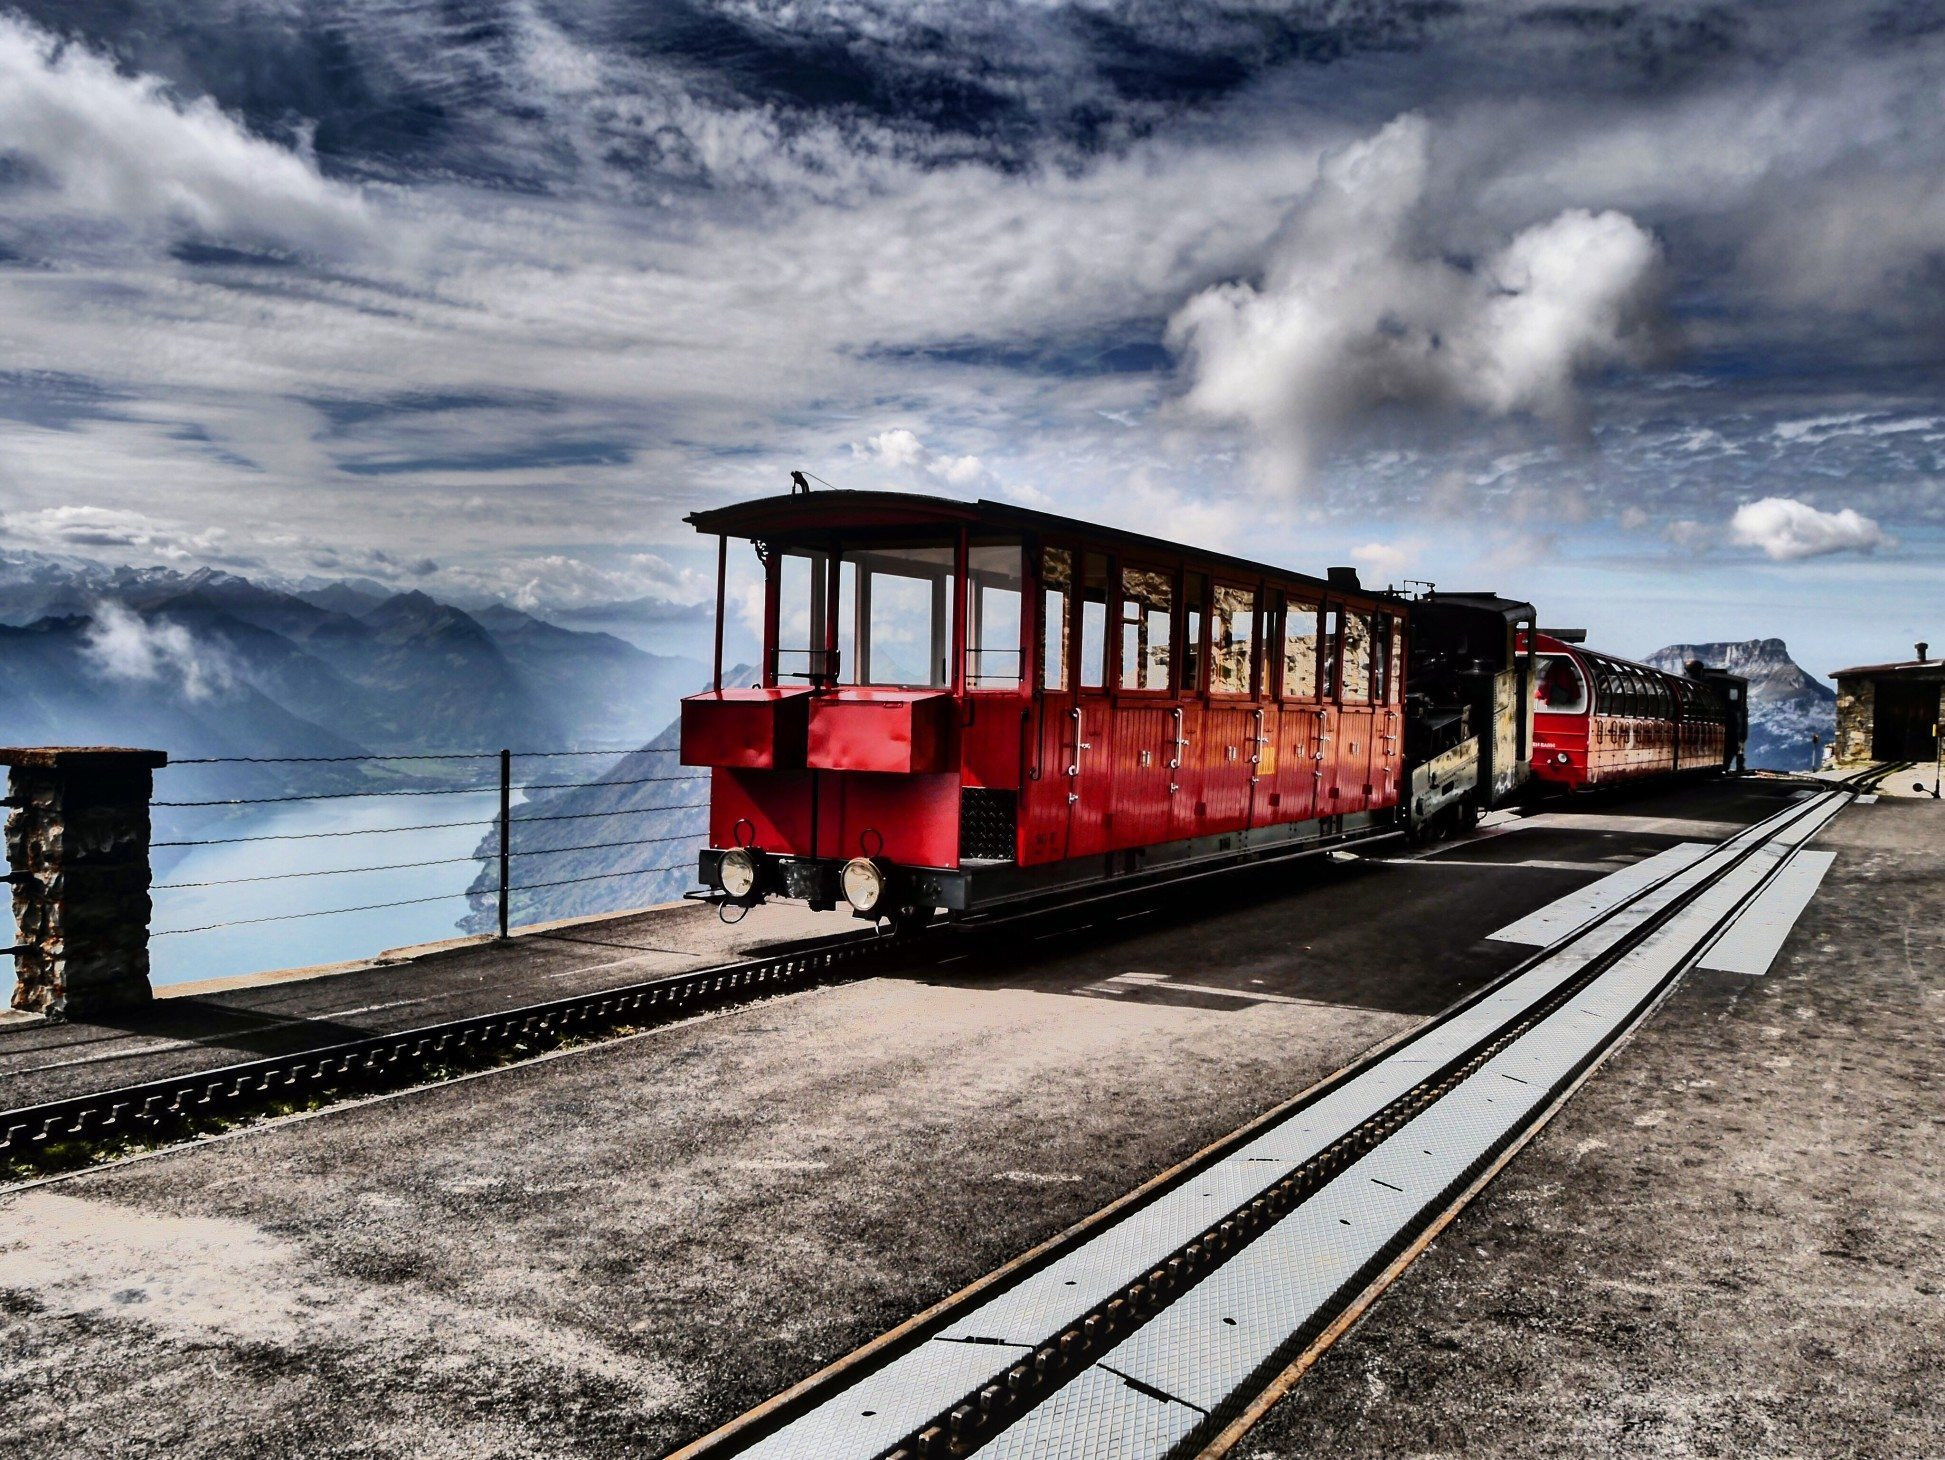 CONT.GALLERY rothorn end of railway 2244 m high brienz be switzerland t20 a76a2x